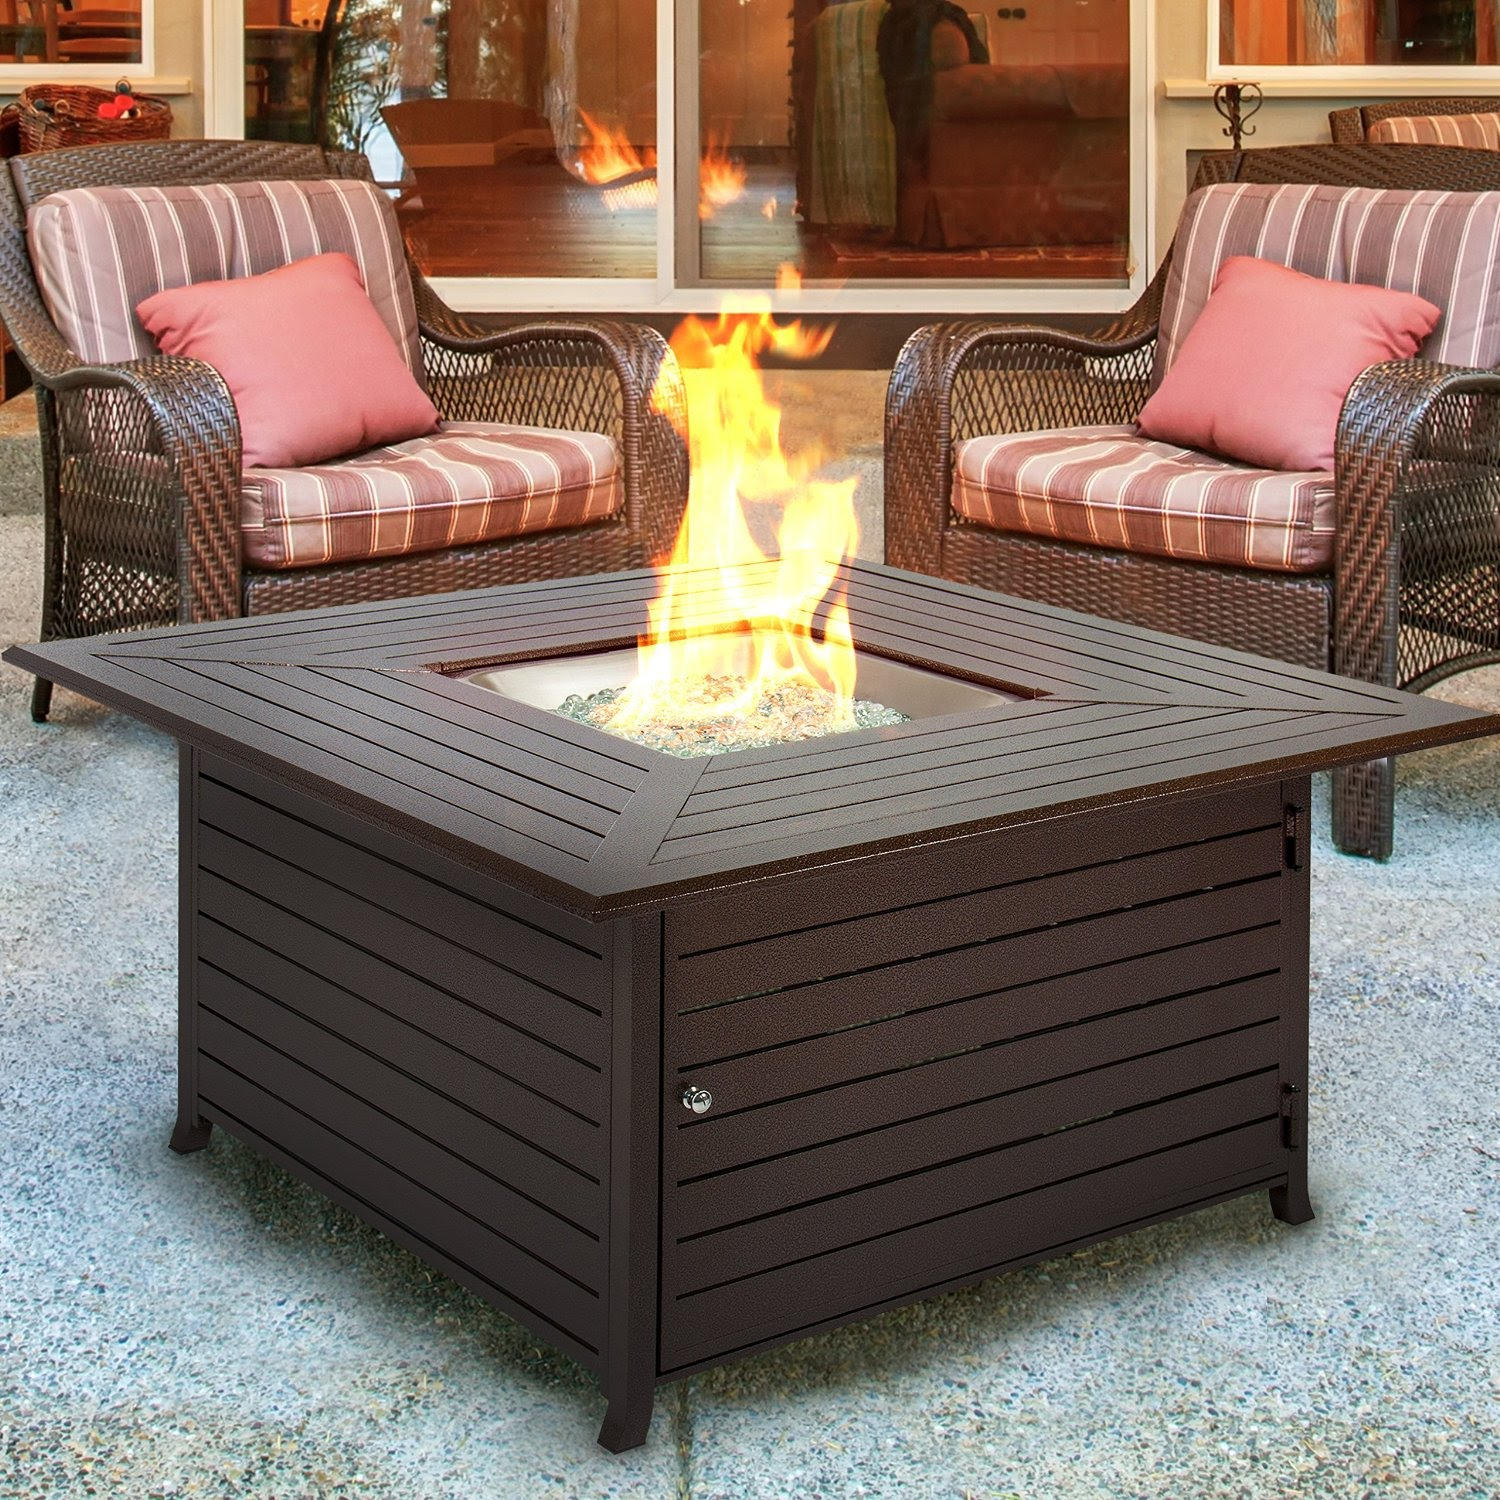 Top Ten Best Gas Fire Pit Tables - Octagon propane fire pit table